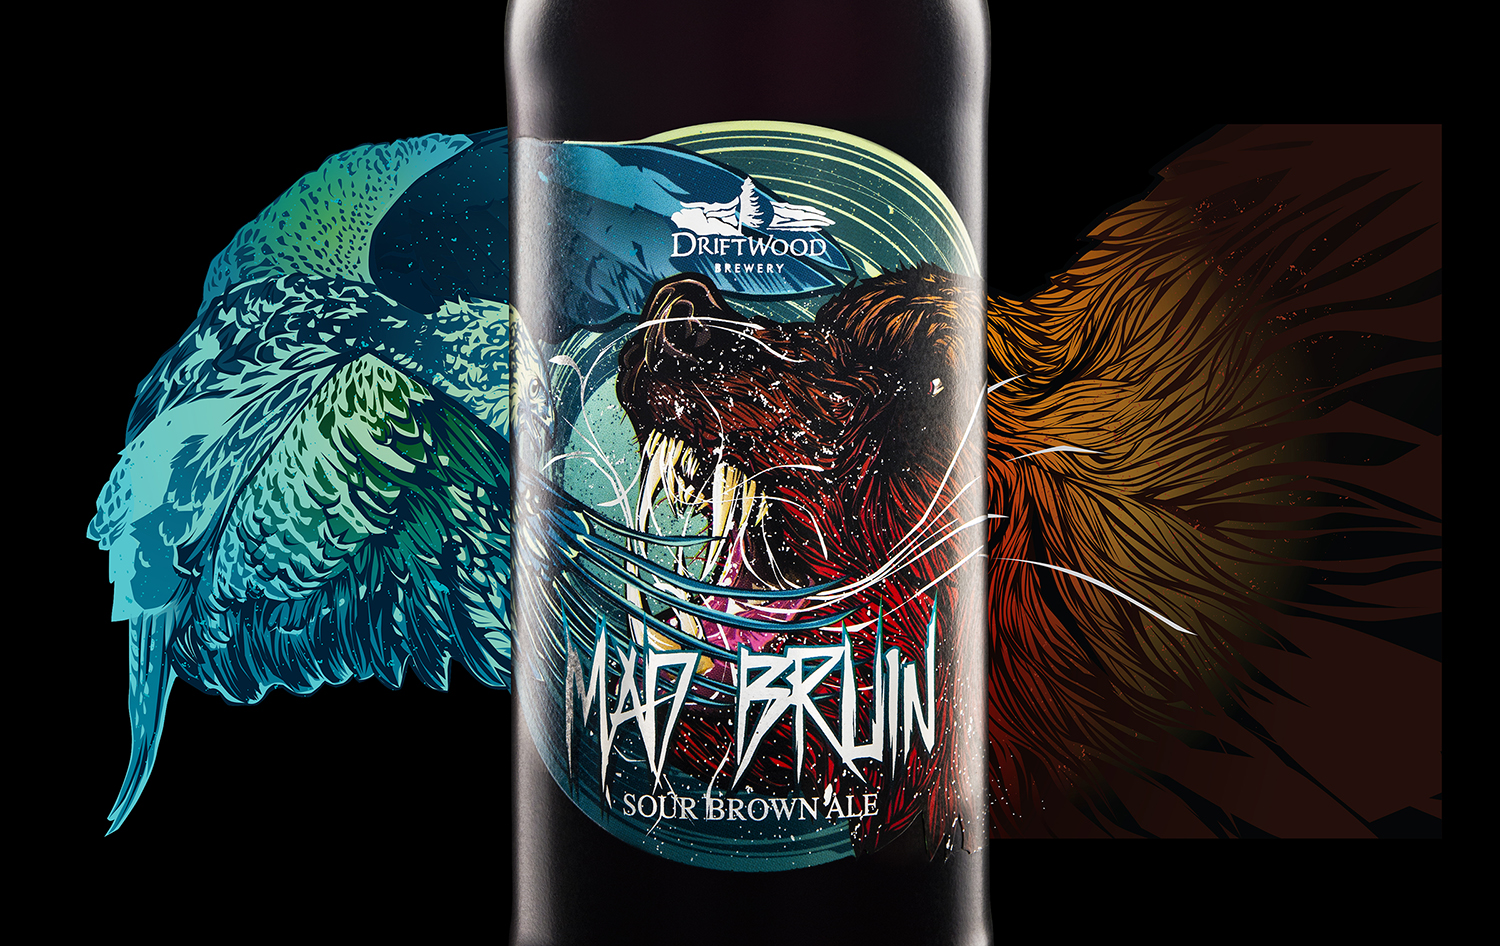 Packaging Design for Driftwood Brewery's Mad Bruin Sour Brown Ale